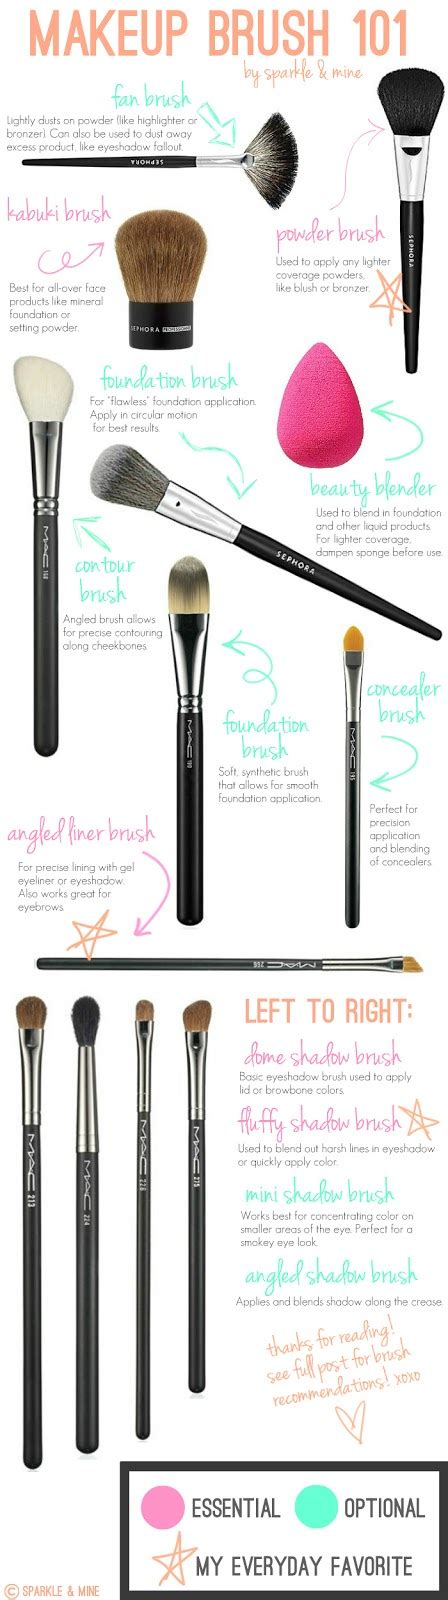 7 Makeup Tools You Must To Do Your Makeup Like A Pro by Sparkle Mine Makeup Brush 101